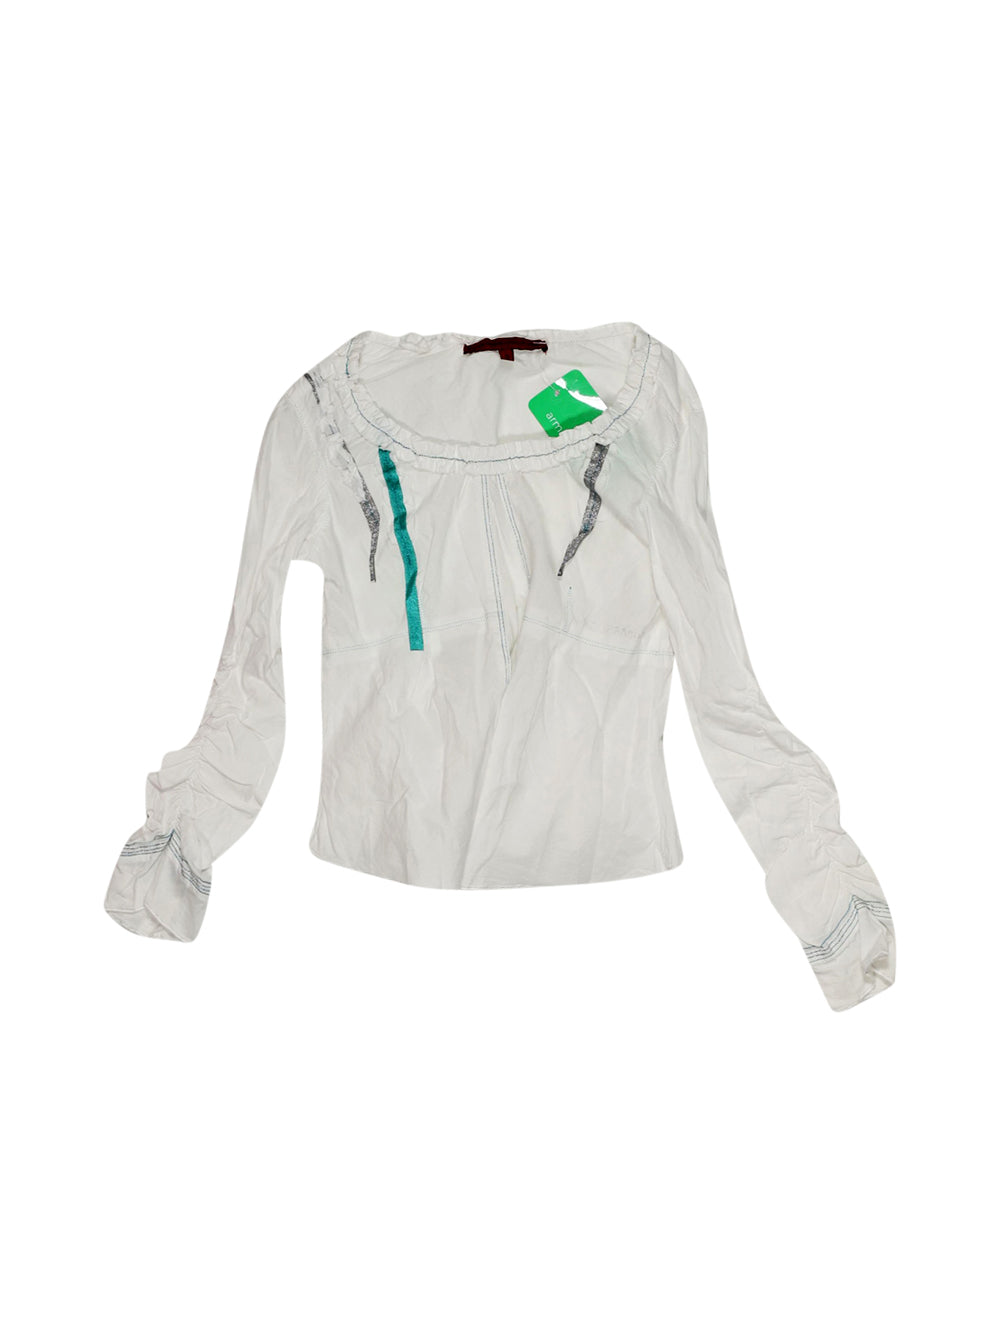 Front photo of Preloved le jean de marithé White Girl's long sleeved shirt - size 3-4 yrs